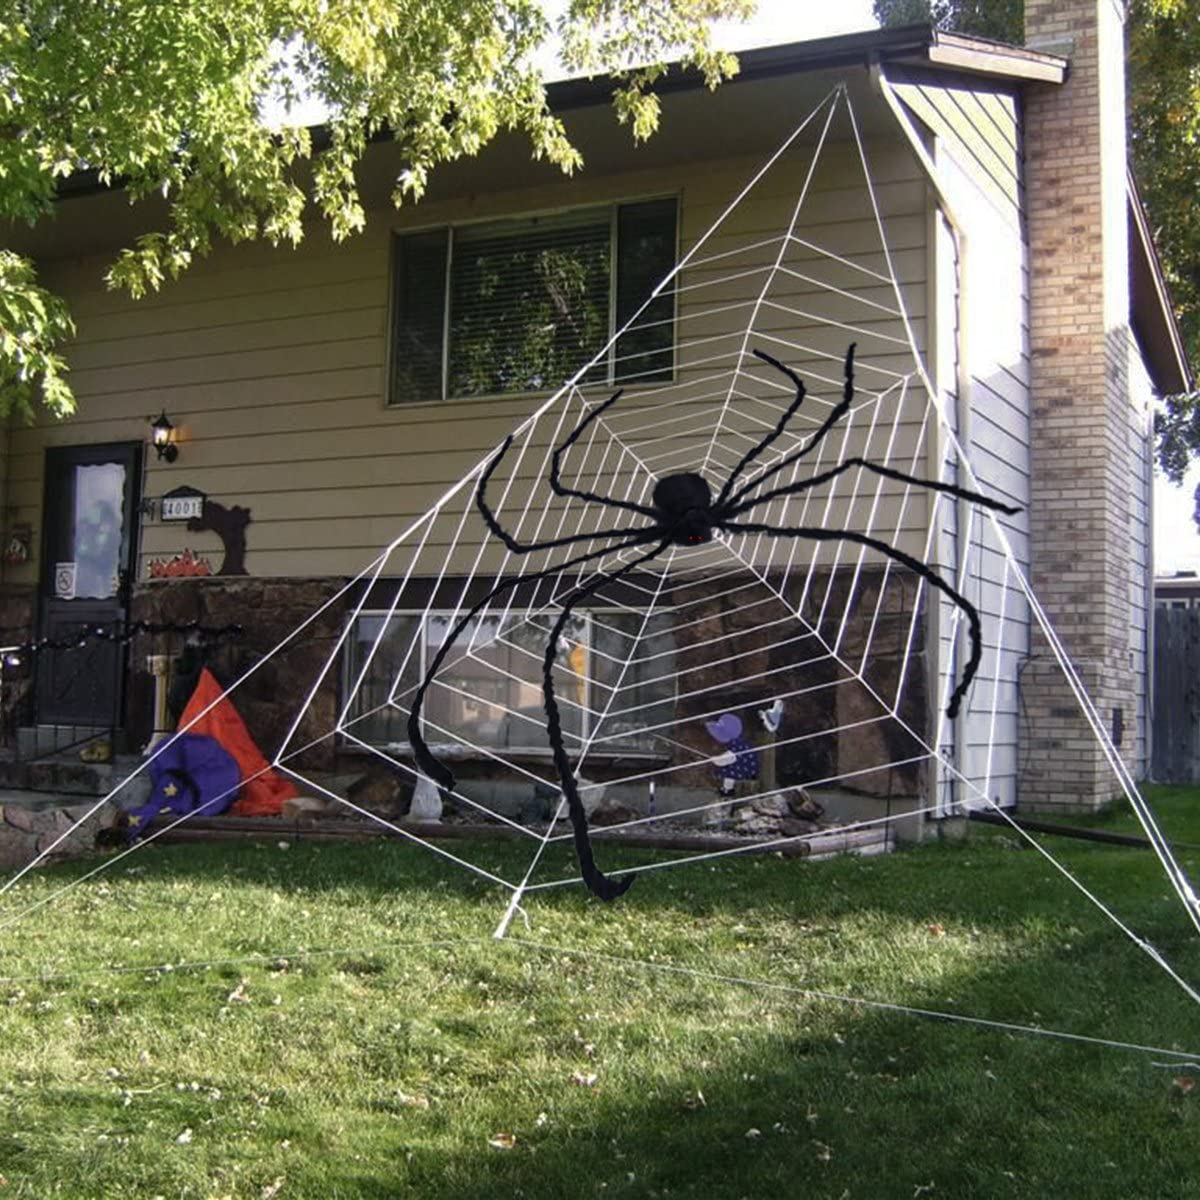 Giant Halloween Spider Black Largest Scary Hairy Spider for Halloween Decorations or Haunted House Decor 228CM